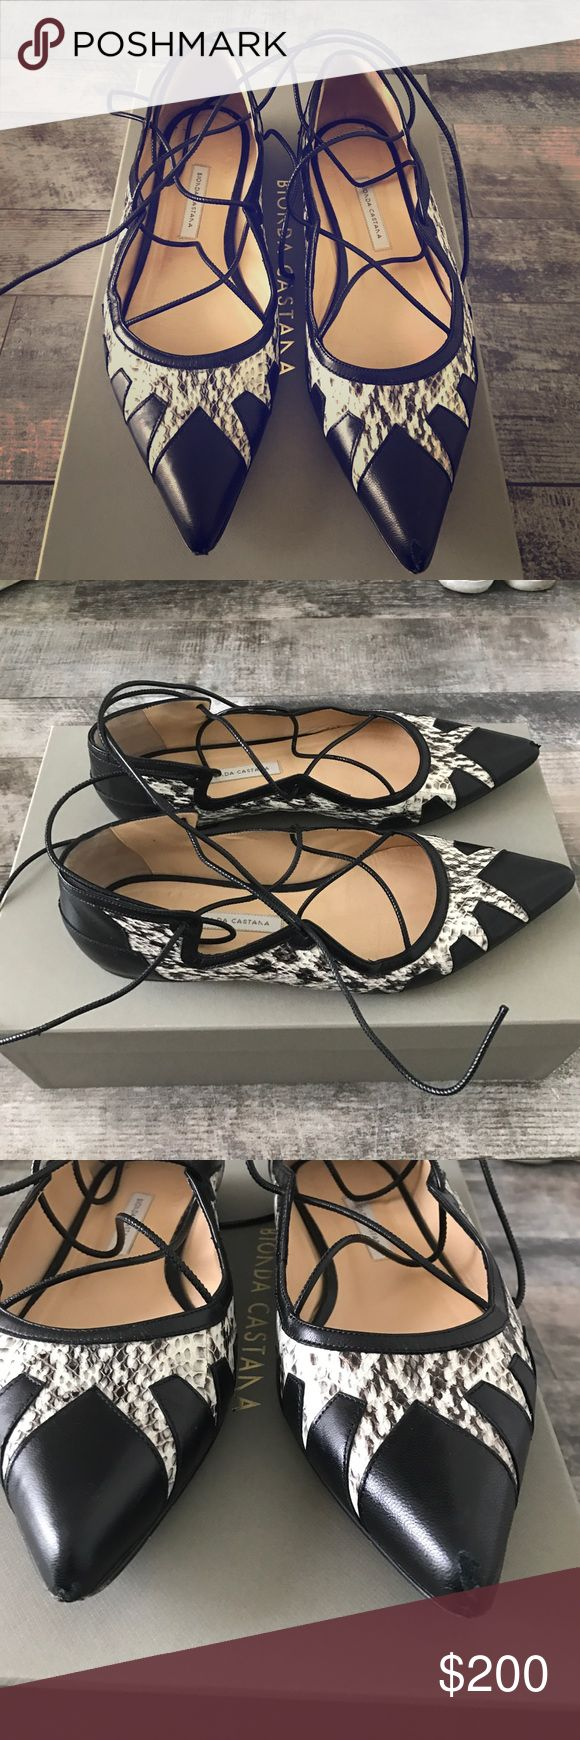 """Bionda Castana """"Geraldine"""" flats 37.5 Excellent condition. Minor scuffing of the leather in front of the shoes (the pointed part as seen in the pictures). Bionda Castana Shoes Flats & Loafers"""